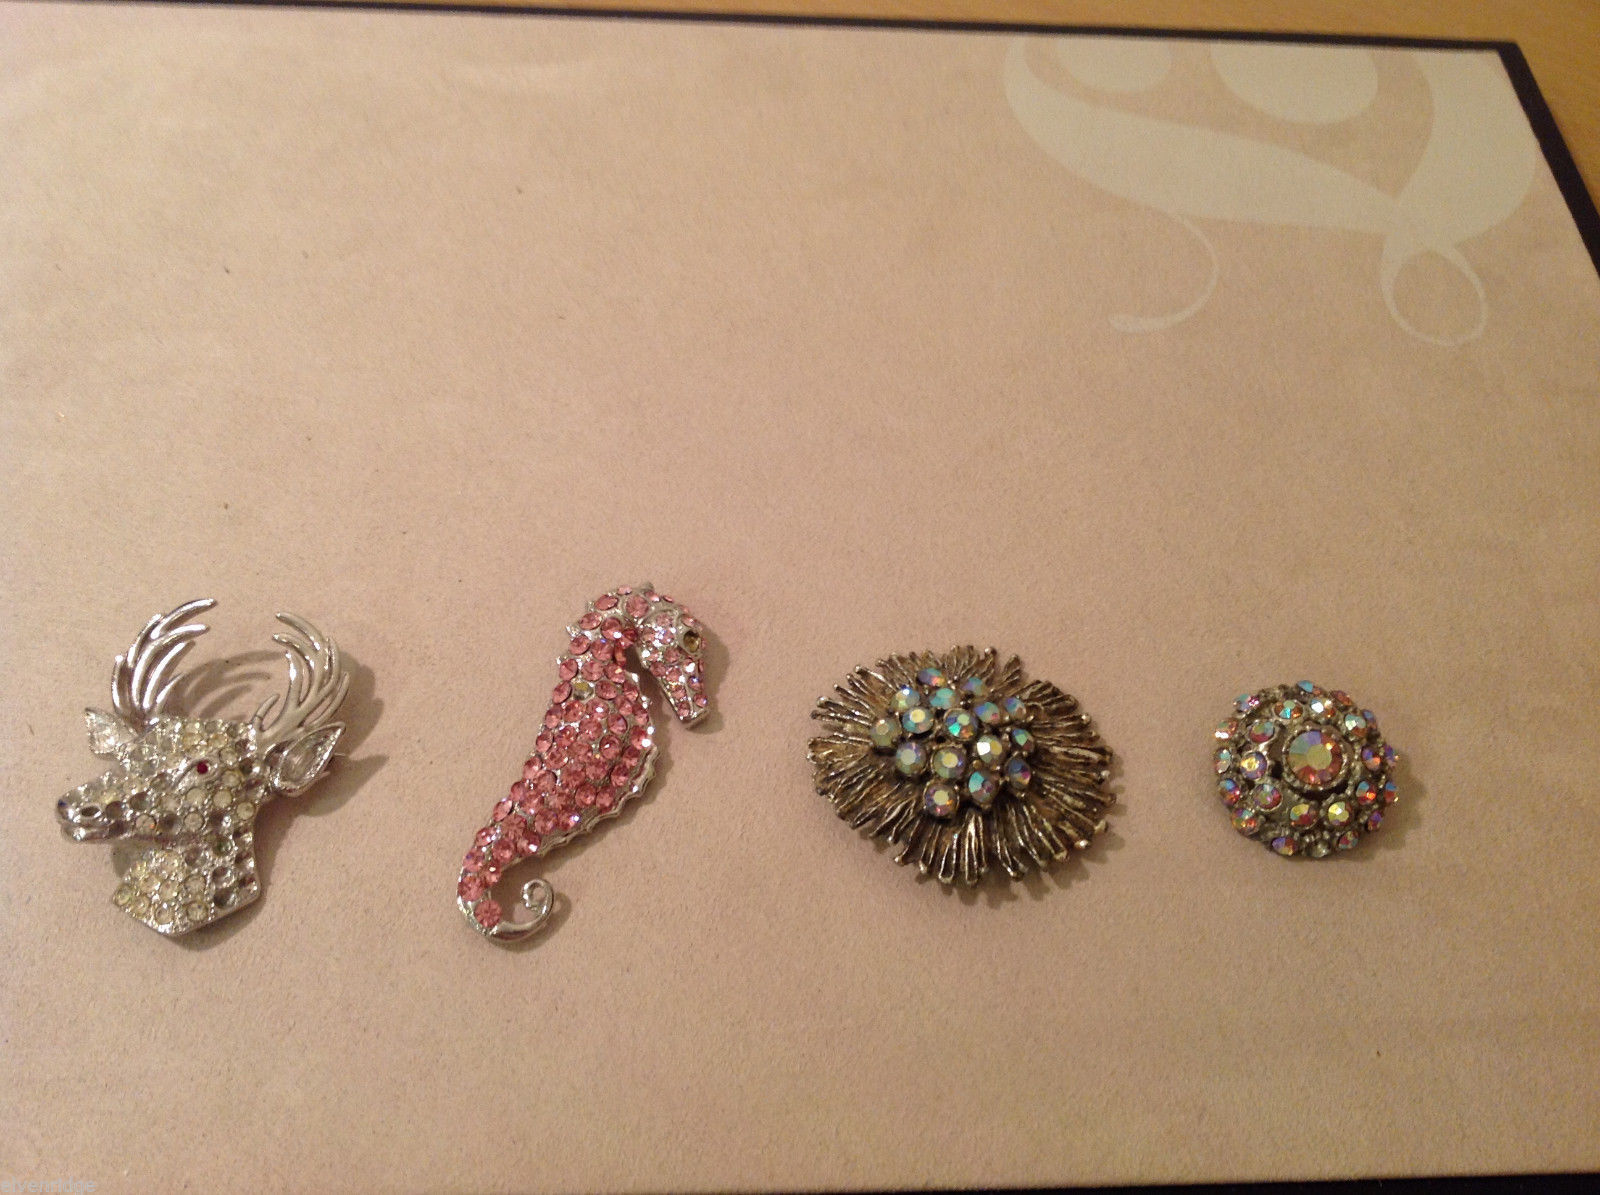 Lot of 4 different Costume Brooch Pins with crystals, assorted shapes and sizes